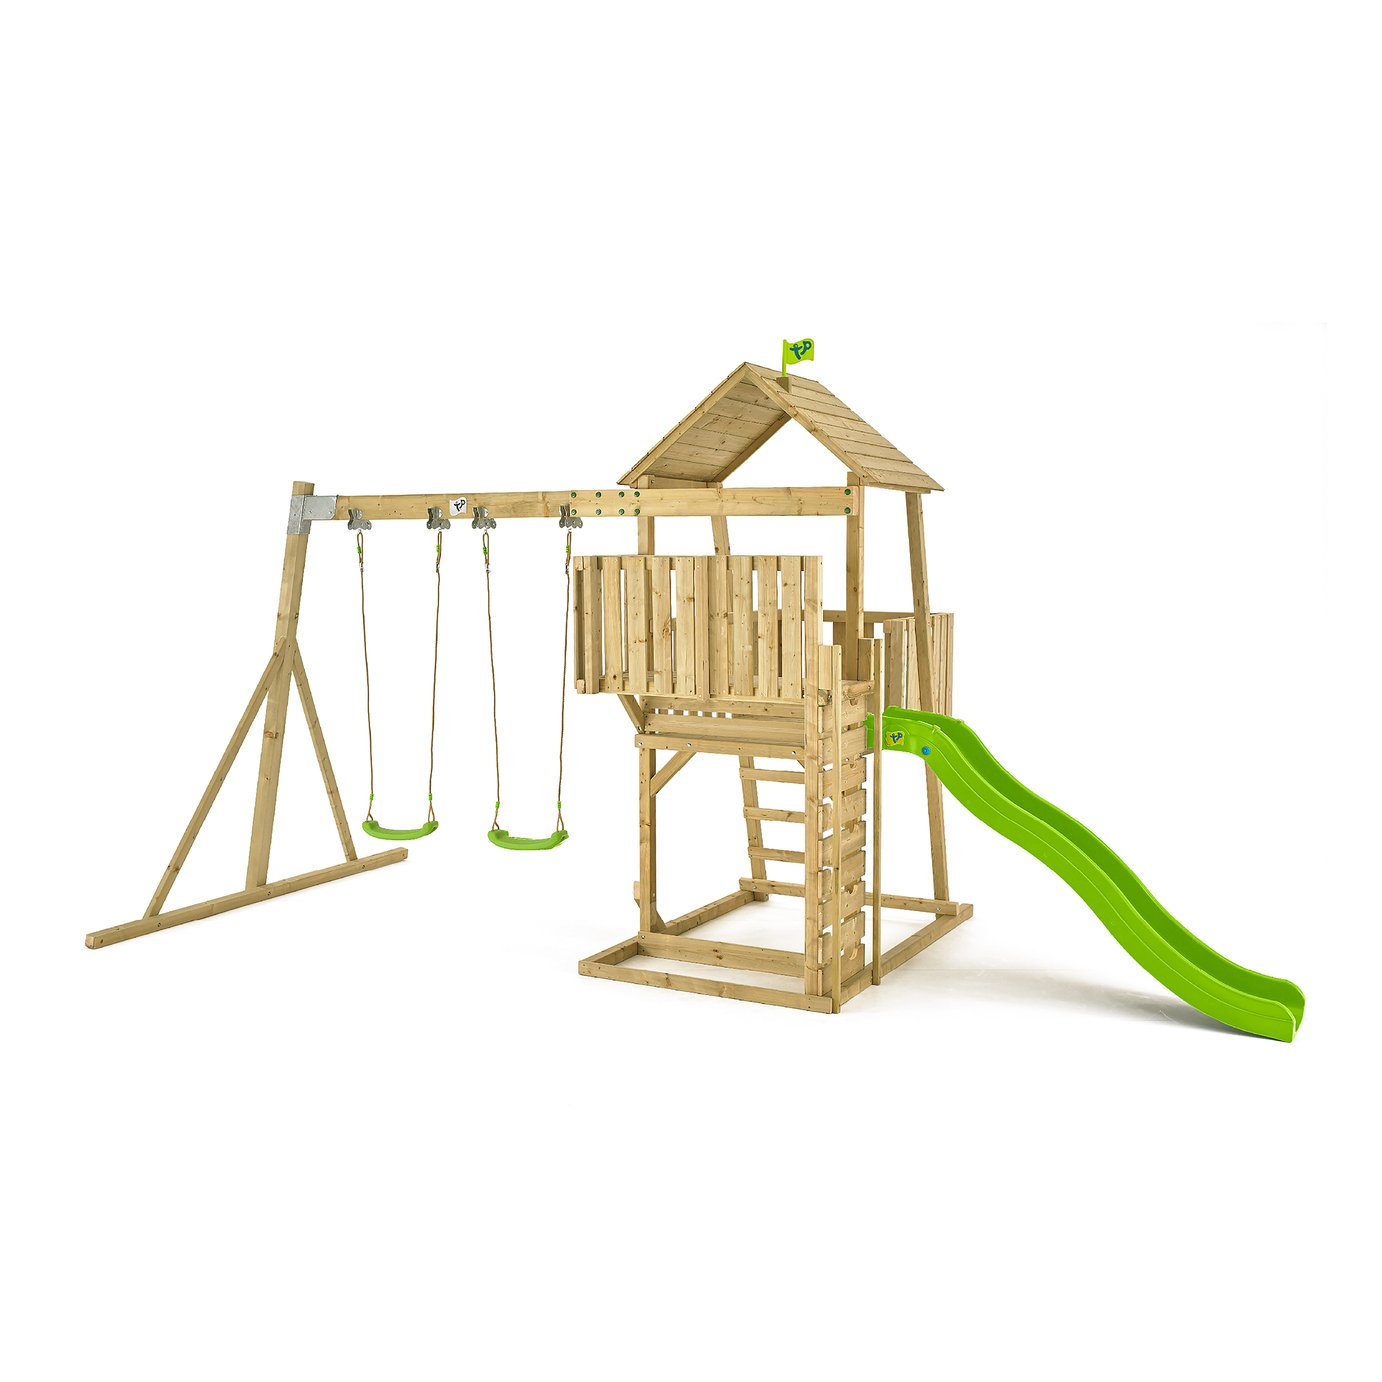 Tp toys TP KINGSWOOD BRUCE WOODEN SWING SET AND SLIDE